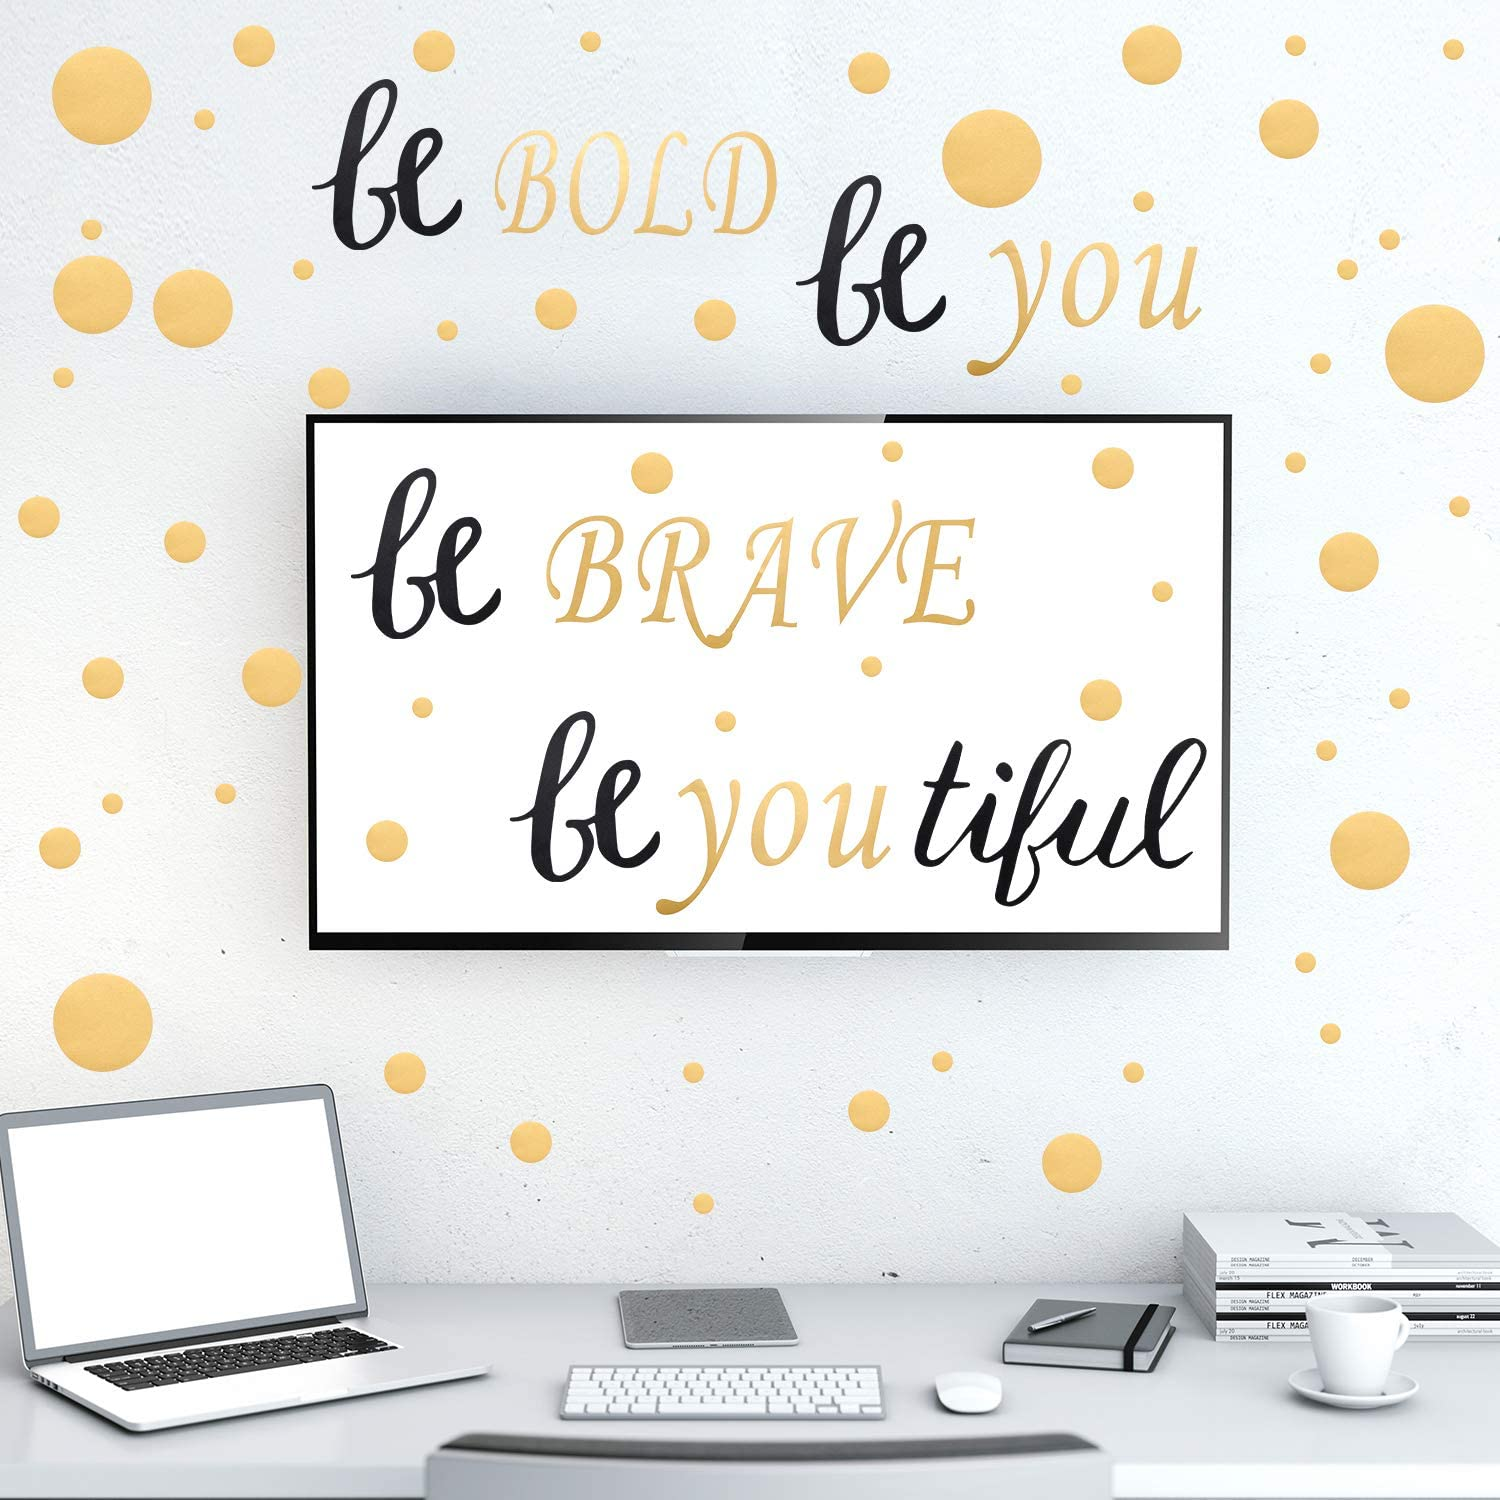 """9 Pieces Wall Decal with 6 Transfer Film, Inspirational Quote Stickers and Dot Sticker, Black and Gold Vinyl Decal Quotes Engraved with Letters""""Be Bold, Be Brave, Be Youtiful"""" DIY Wall Decoration"""